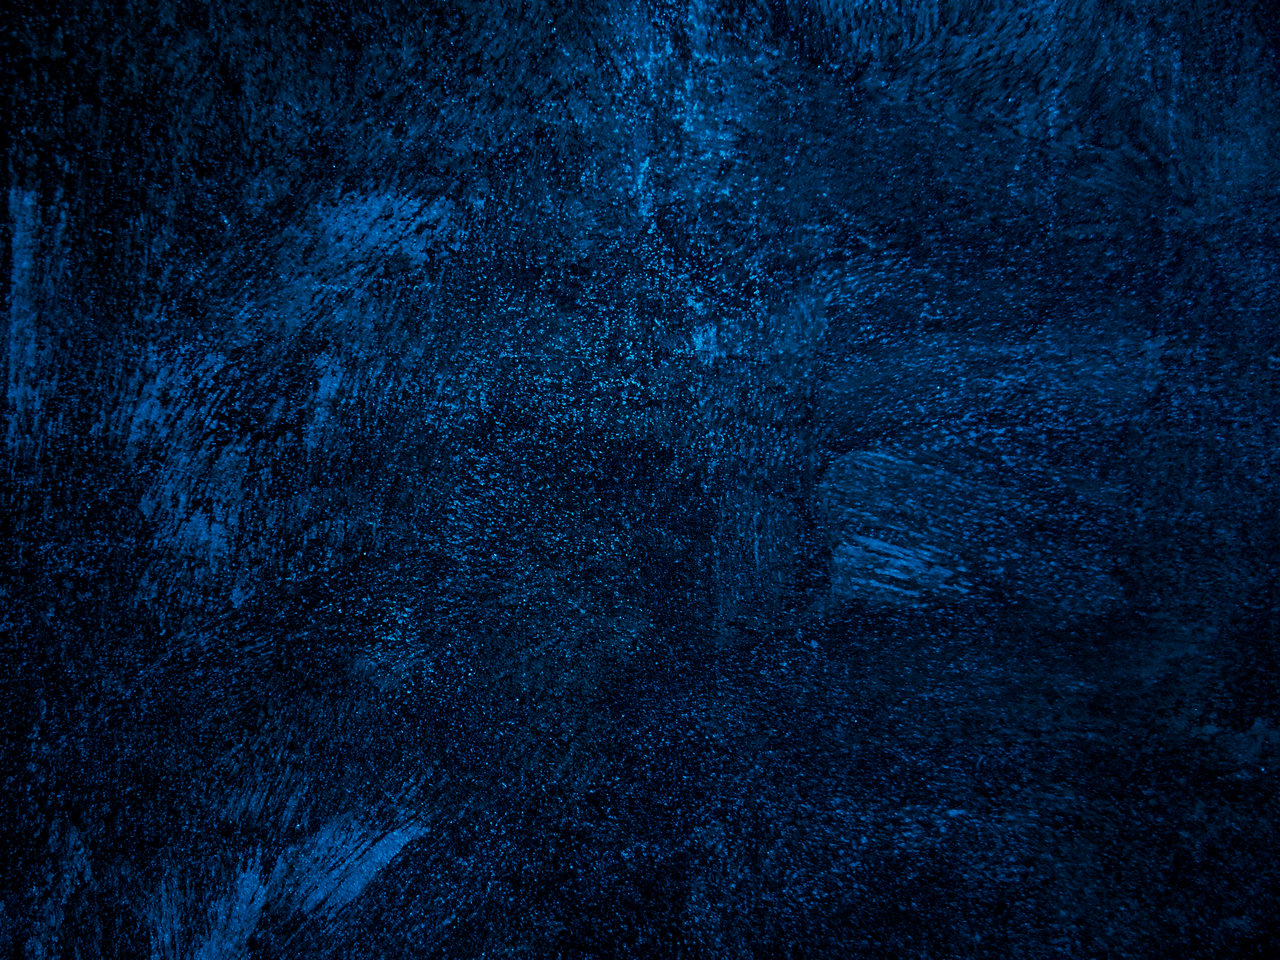 Dark blue wallpaper wallpapersafari for Blue wallpaper for walls